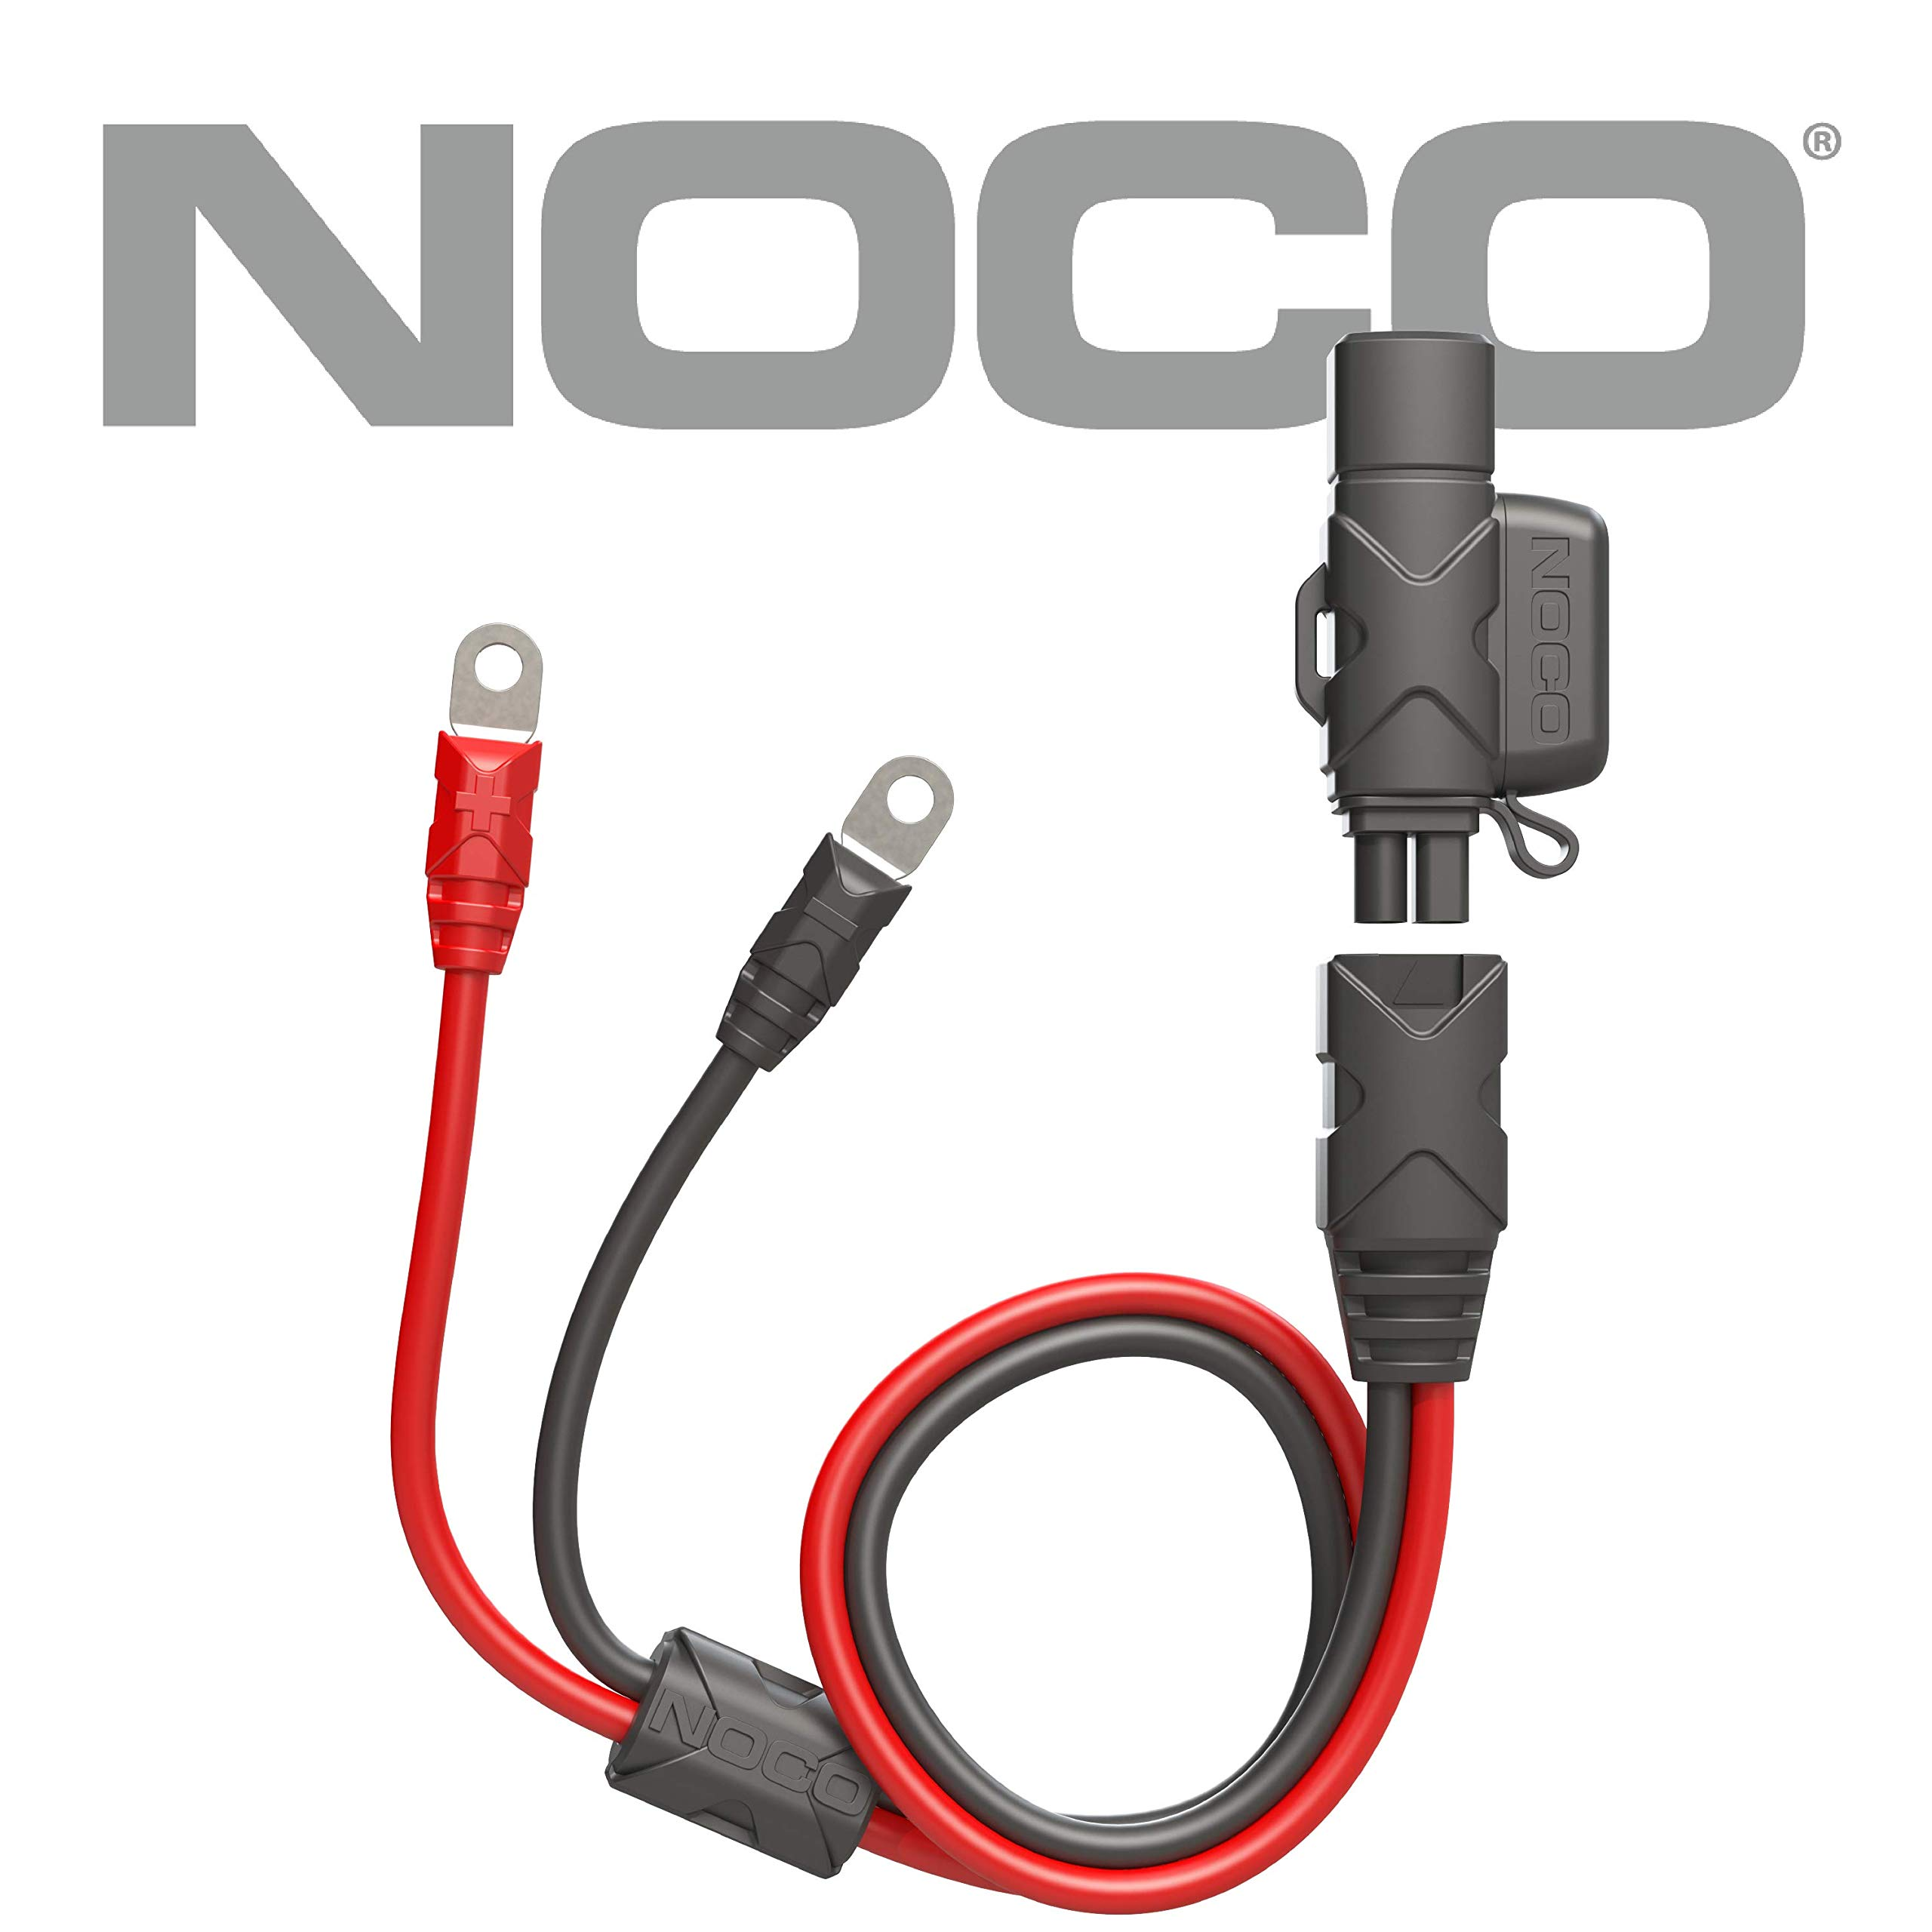 NOCO GBC007 Boost Eyelet Accessory Cable with X-Connect Adapter to Allow Charging Genius Battery Chargers by NOCO